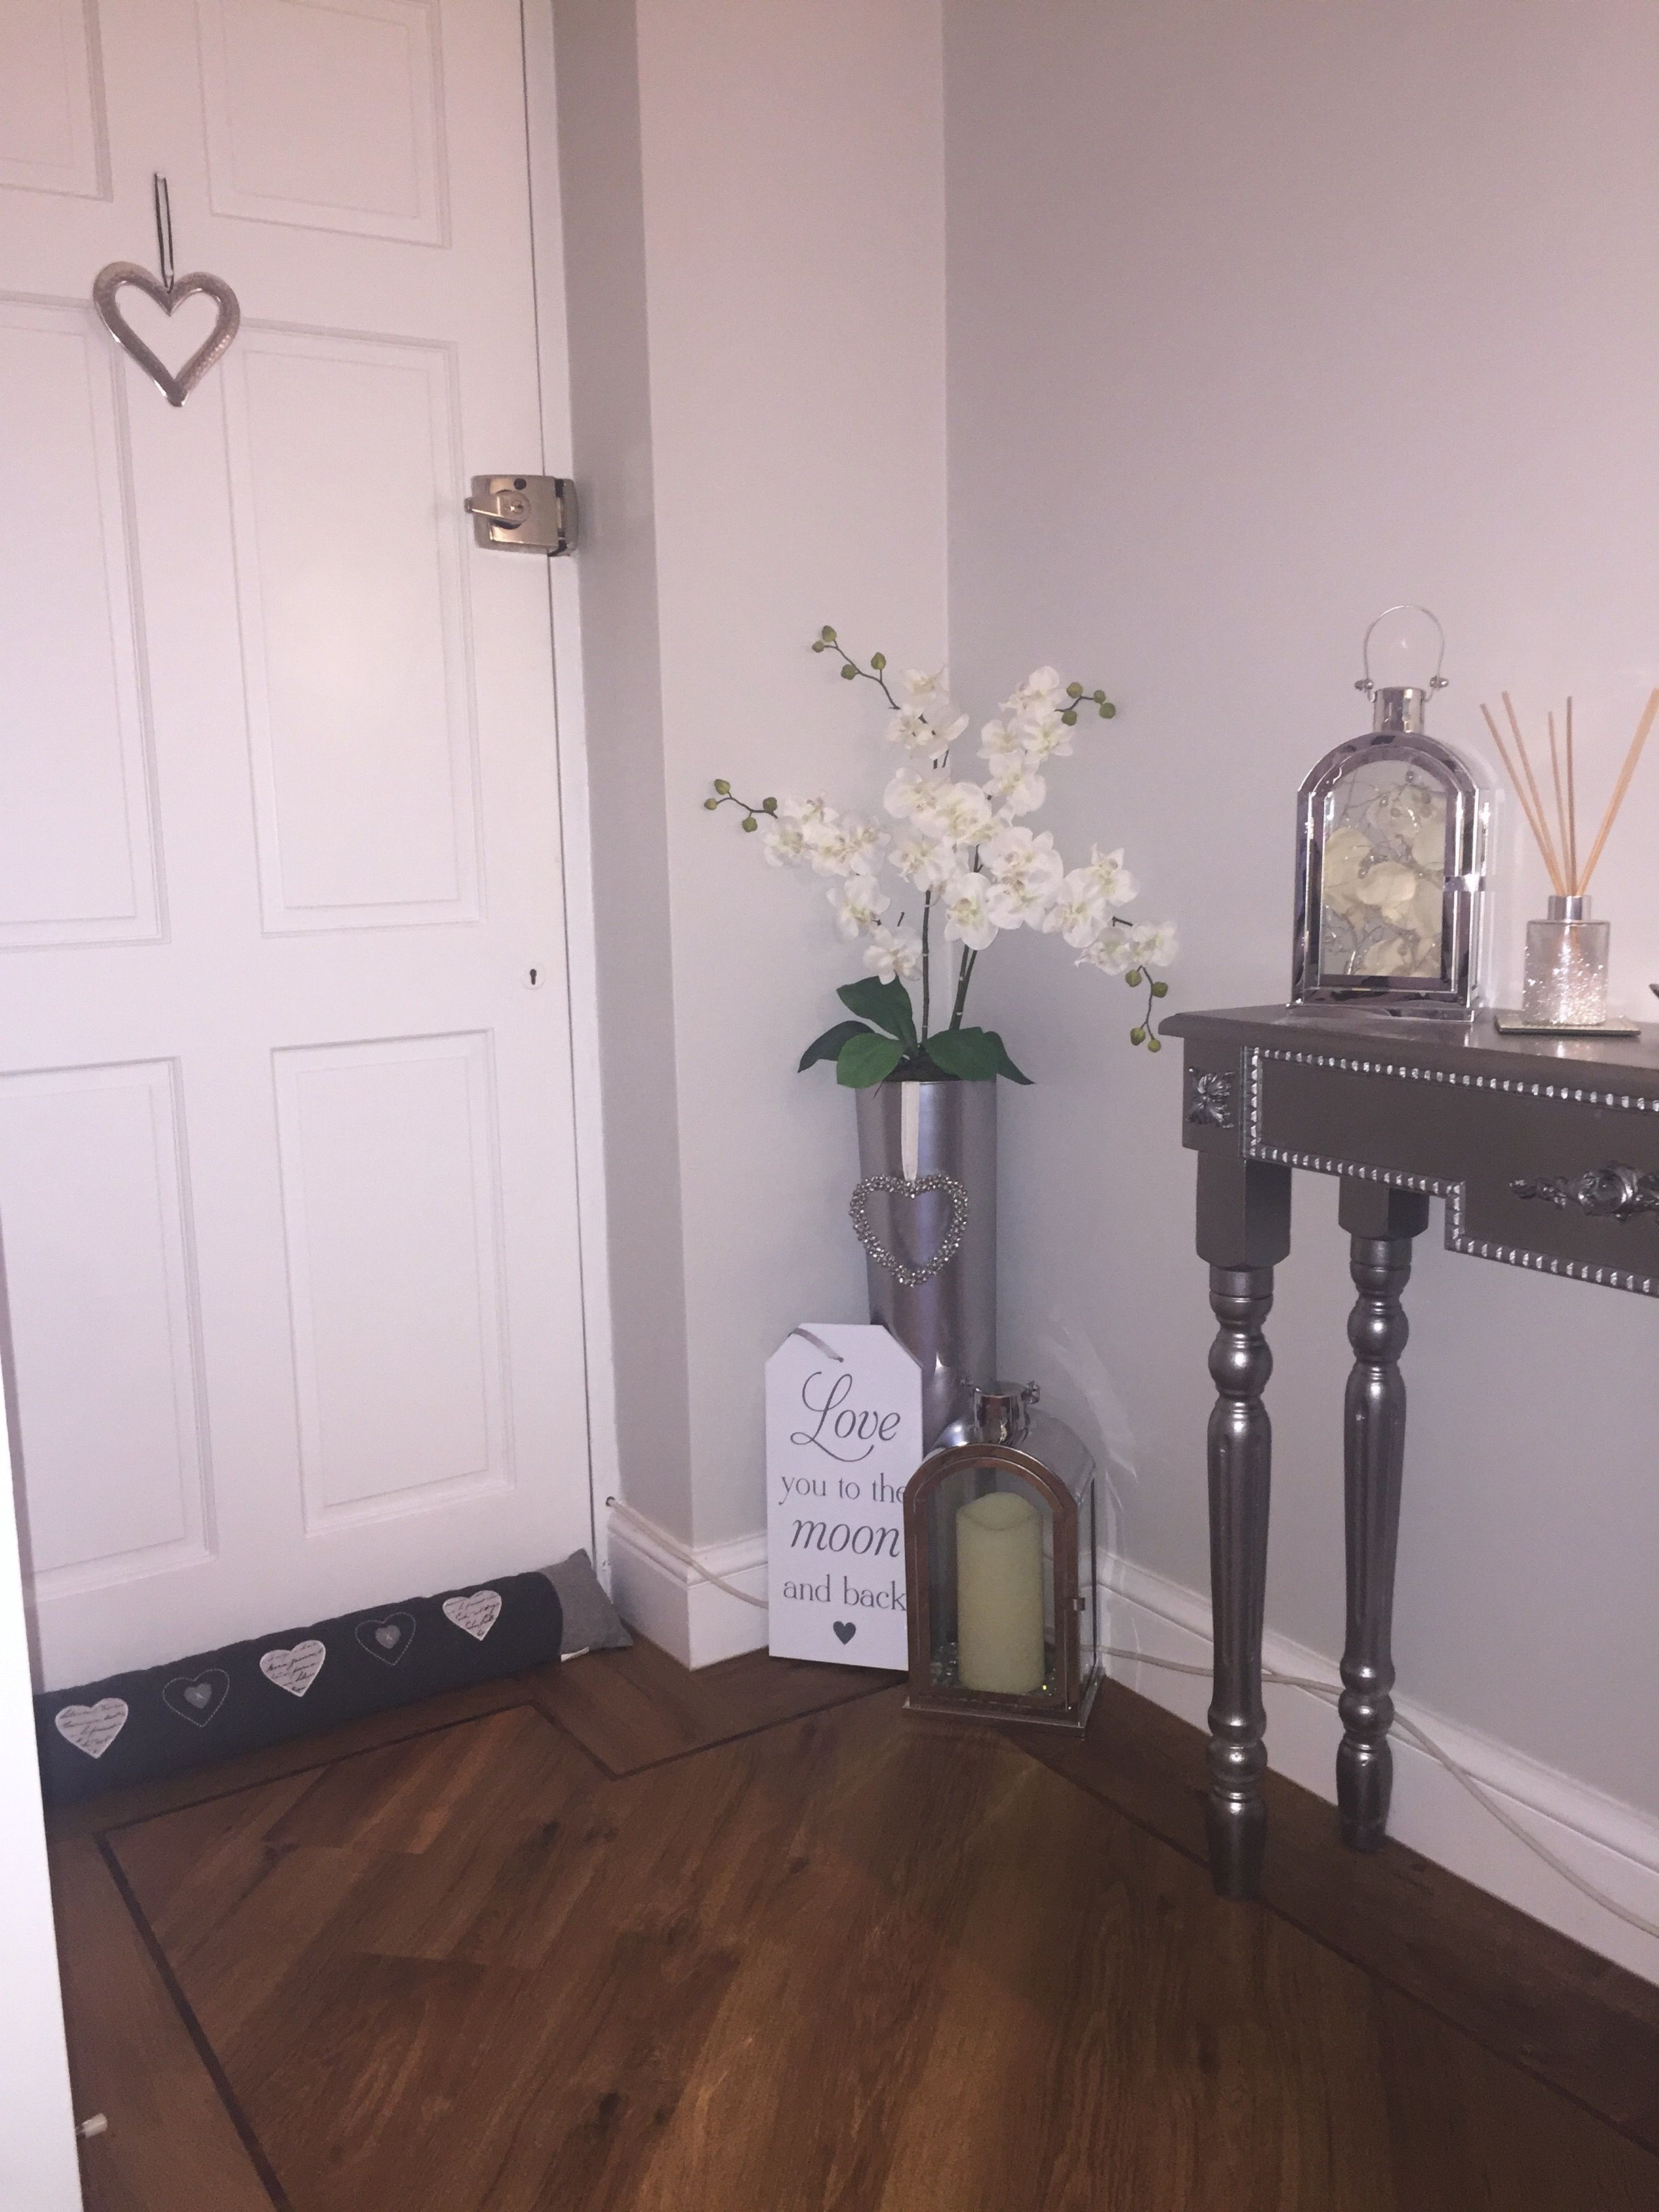 Tall Floor Vase That S Been Spayed Chrome With Orchid Arrangement Chrome Lantern In Different Sizes Adding Some Det Floor Decor Floor Lanterns Diy Home Decor